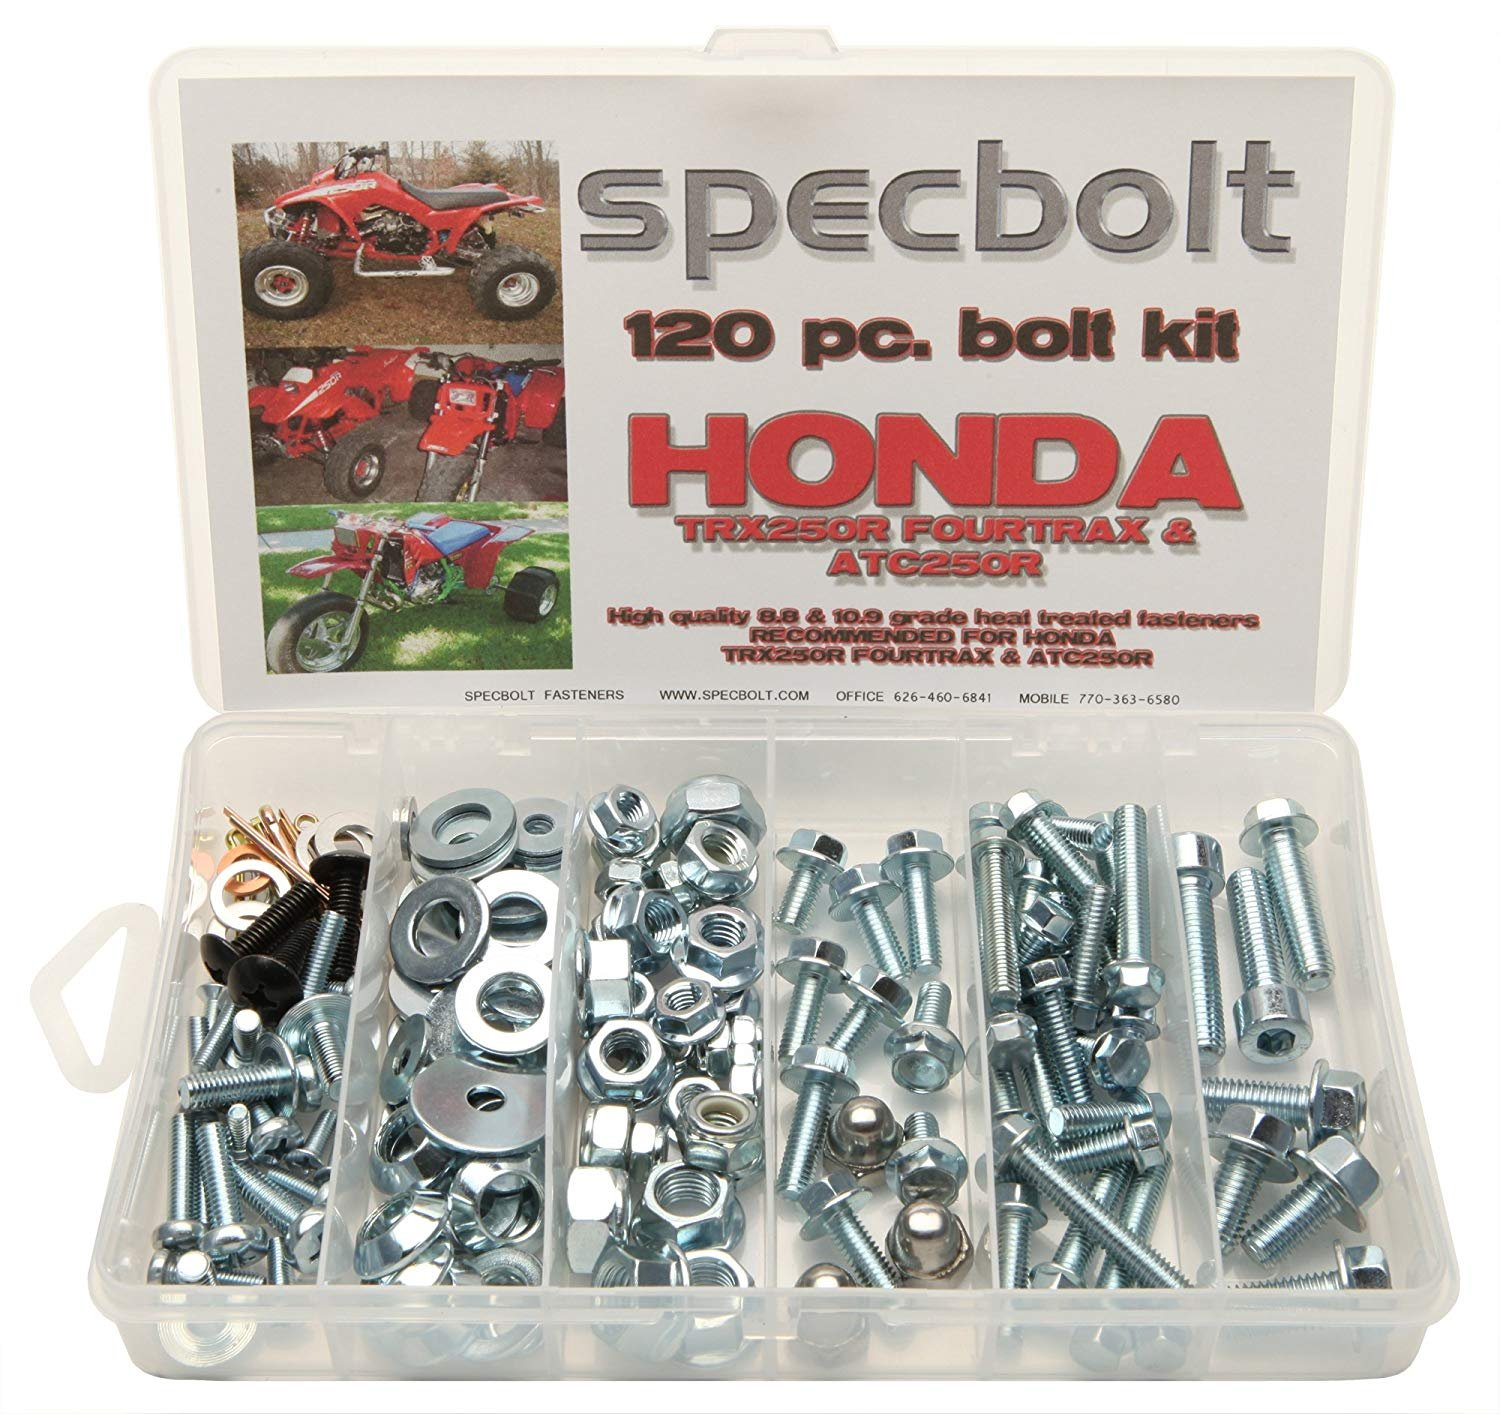 Specbolt Fasteners Brand 150pc Bolt Kit for Honda TRX250R Fourtrax ATC250R Quad 3 wheelers TRX ATC 250R